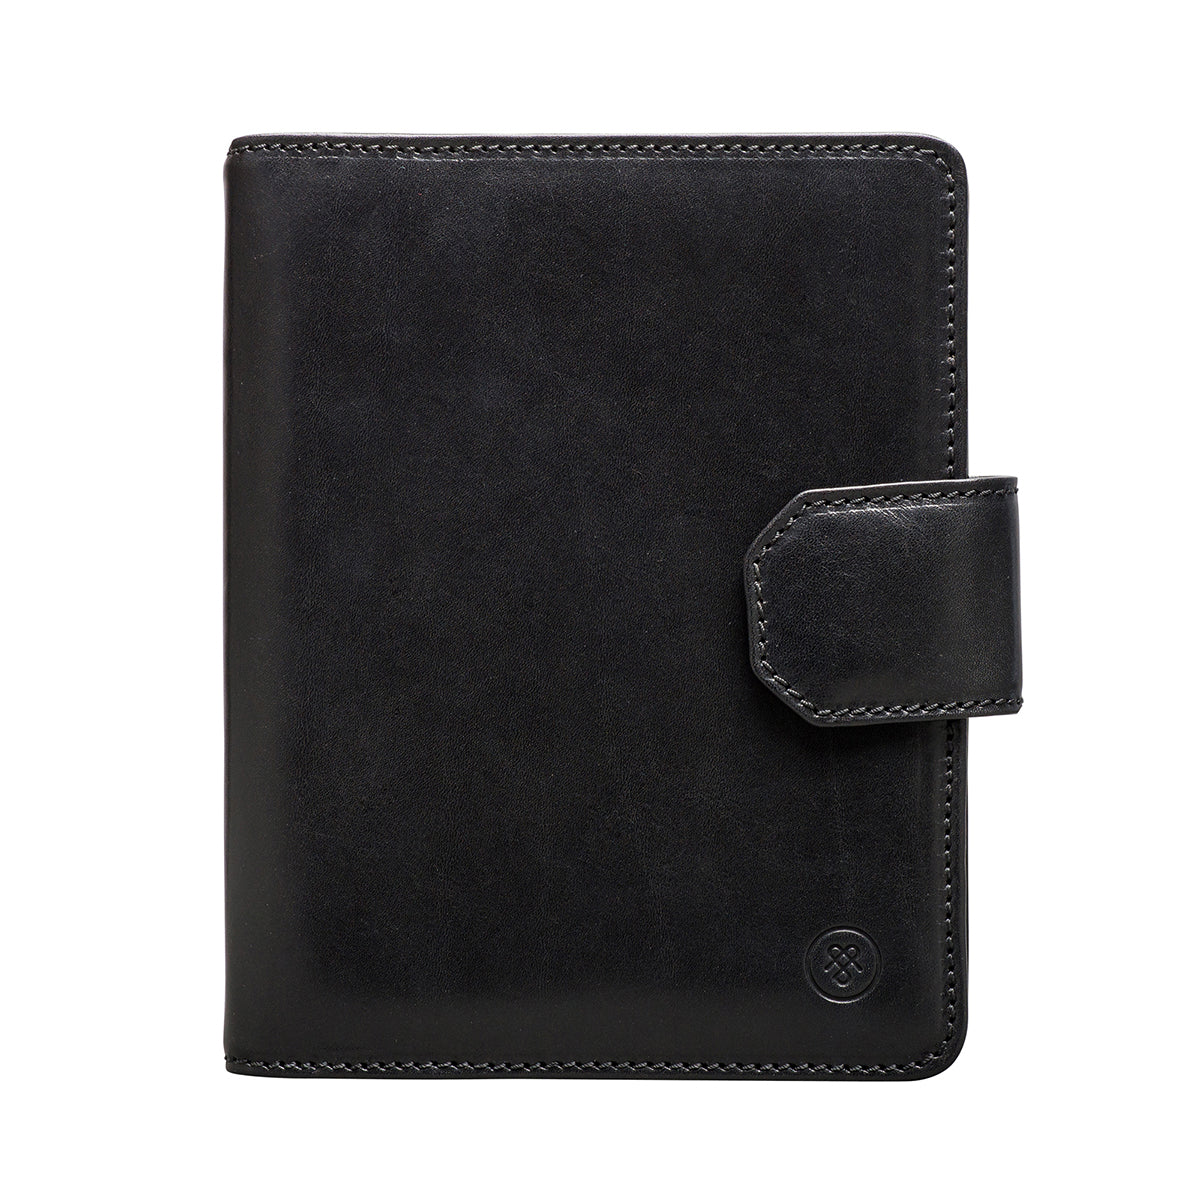 Image 1 of the 'Mozzano' Black Veg-Tanned Leather A5 Padfolio